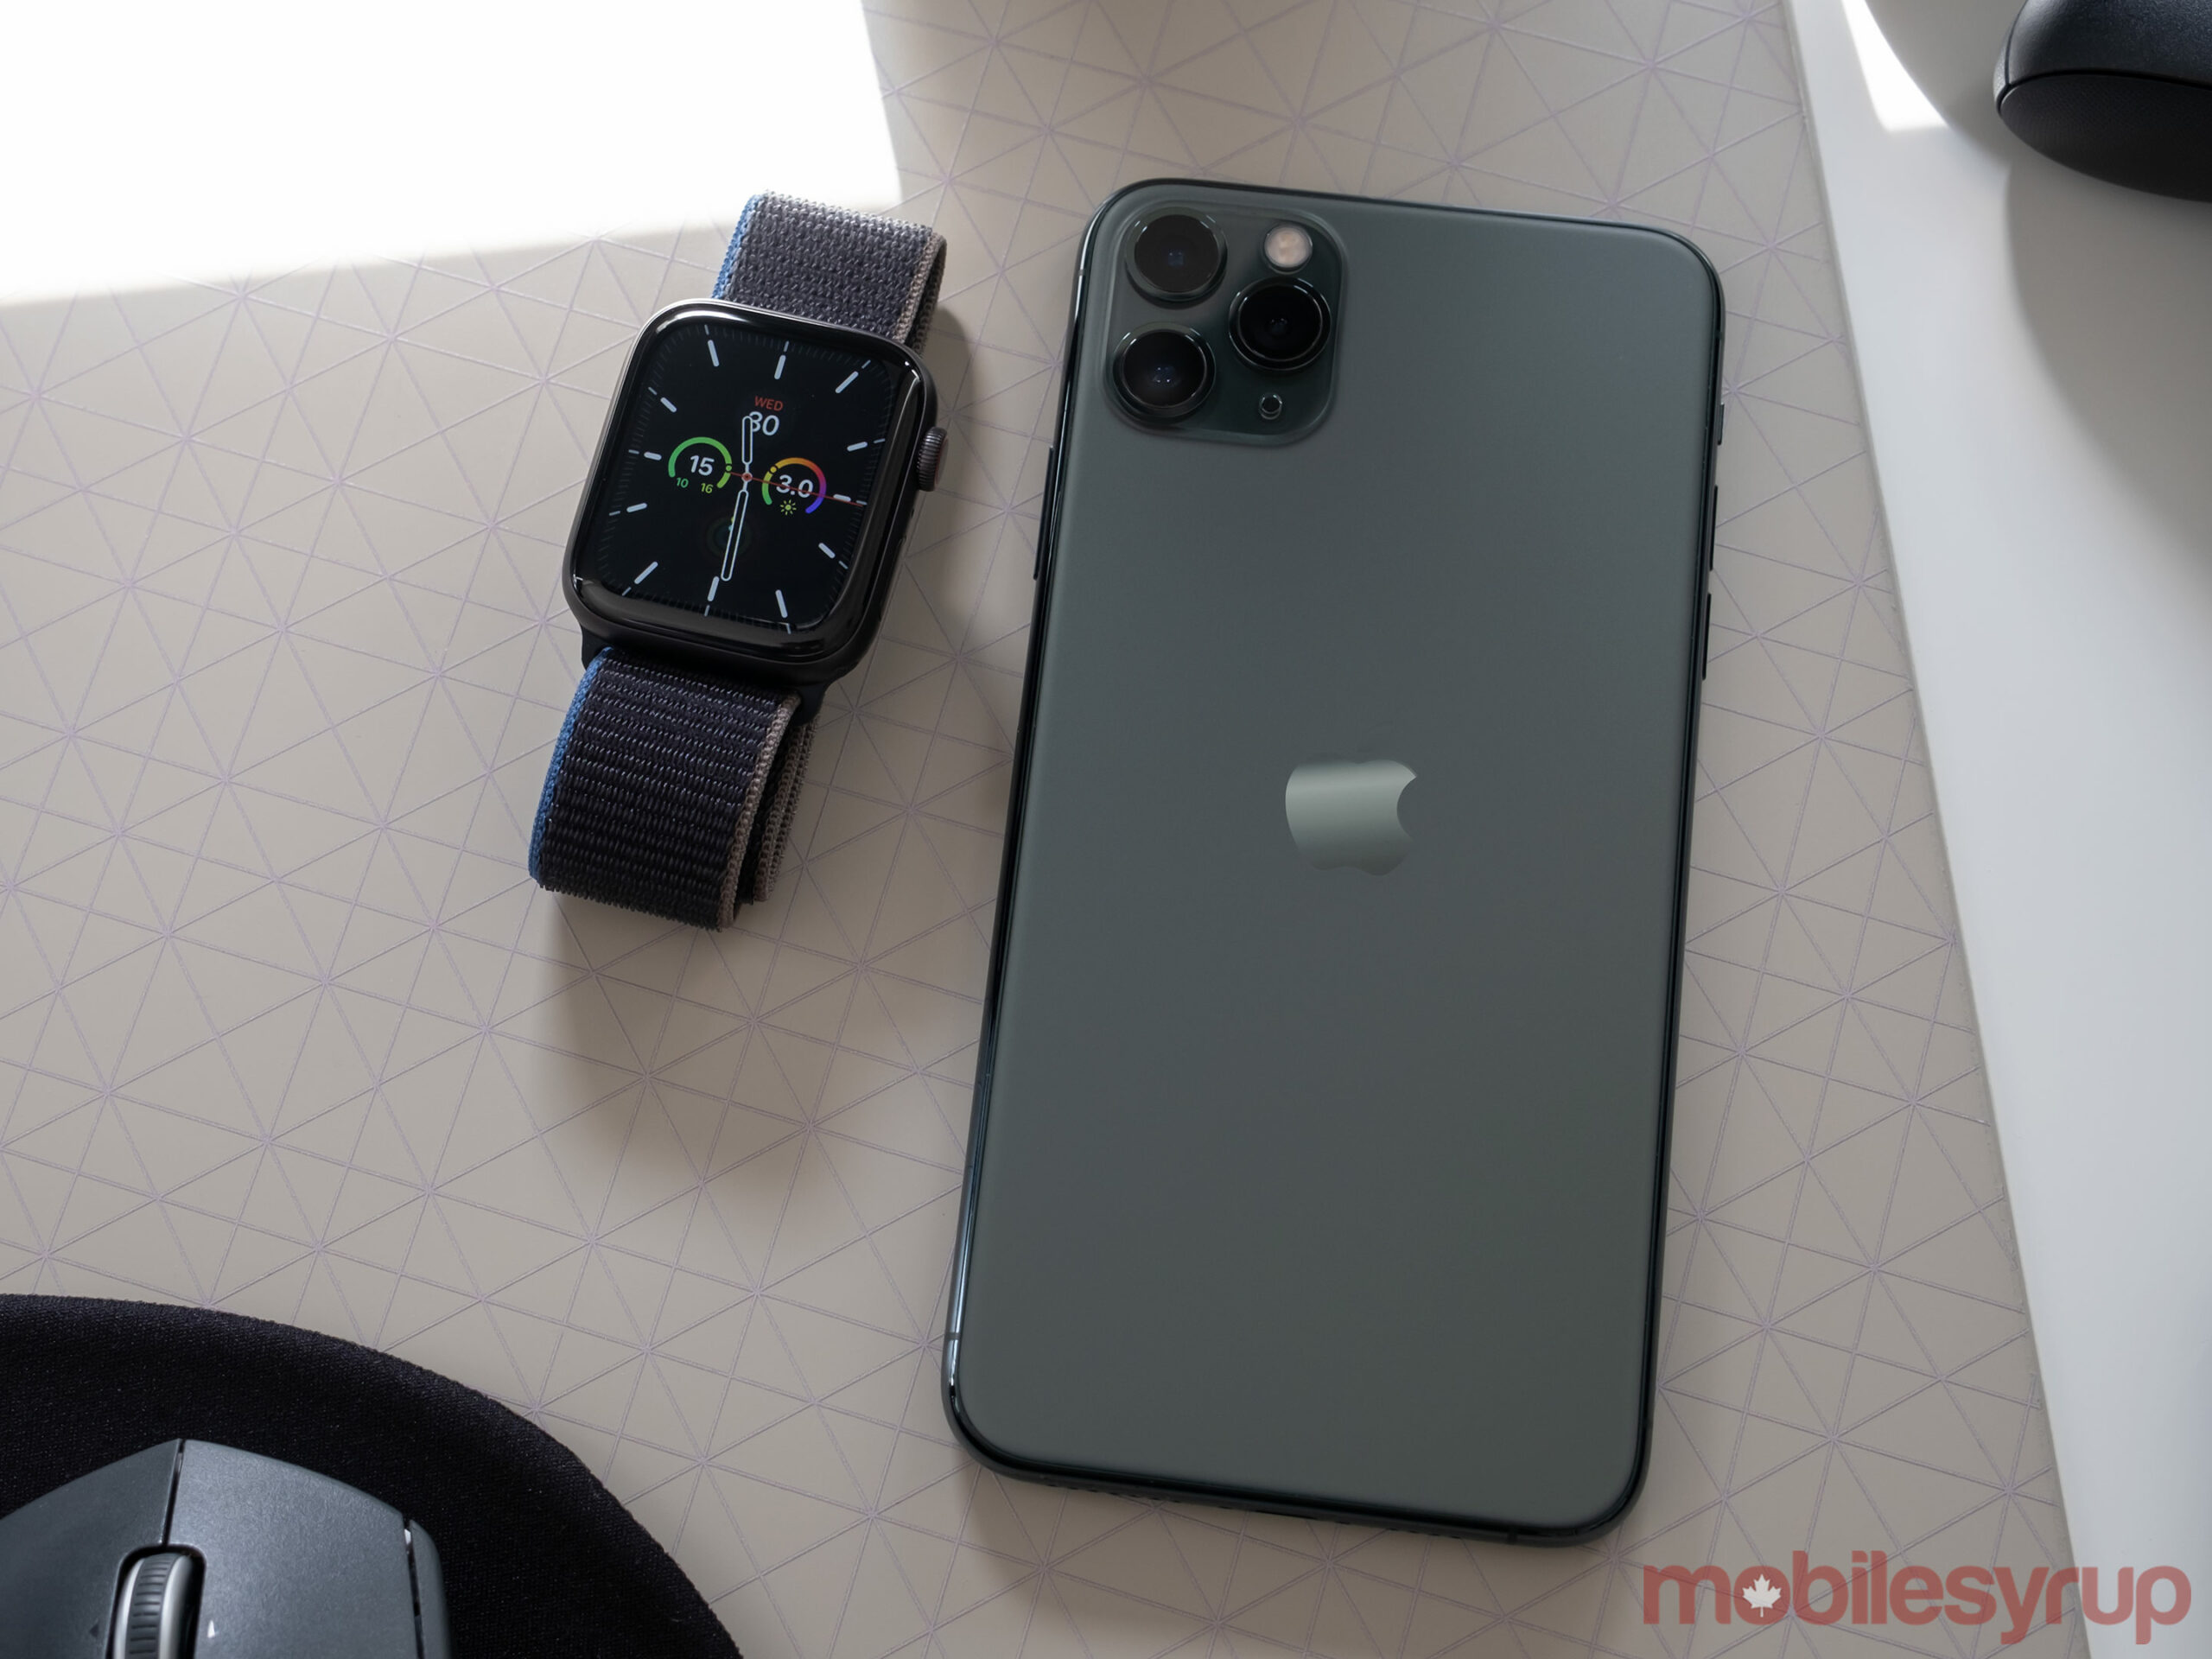 Apple Watch SE beside the iPhone 11 Pro Max